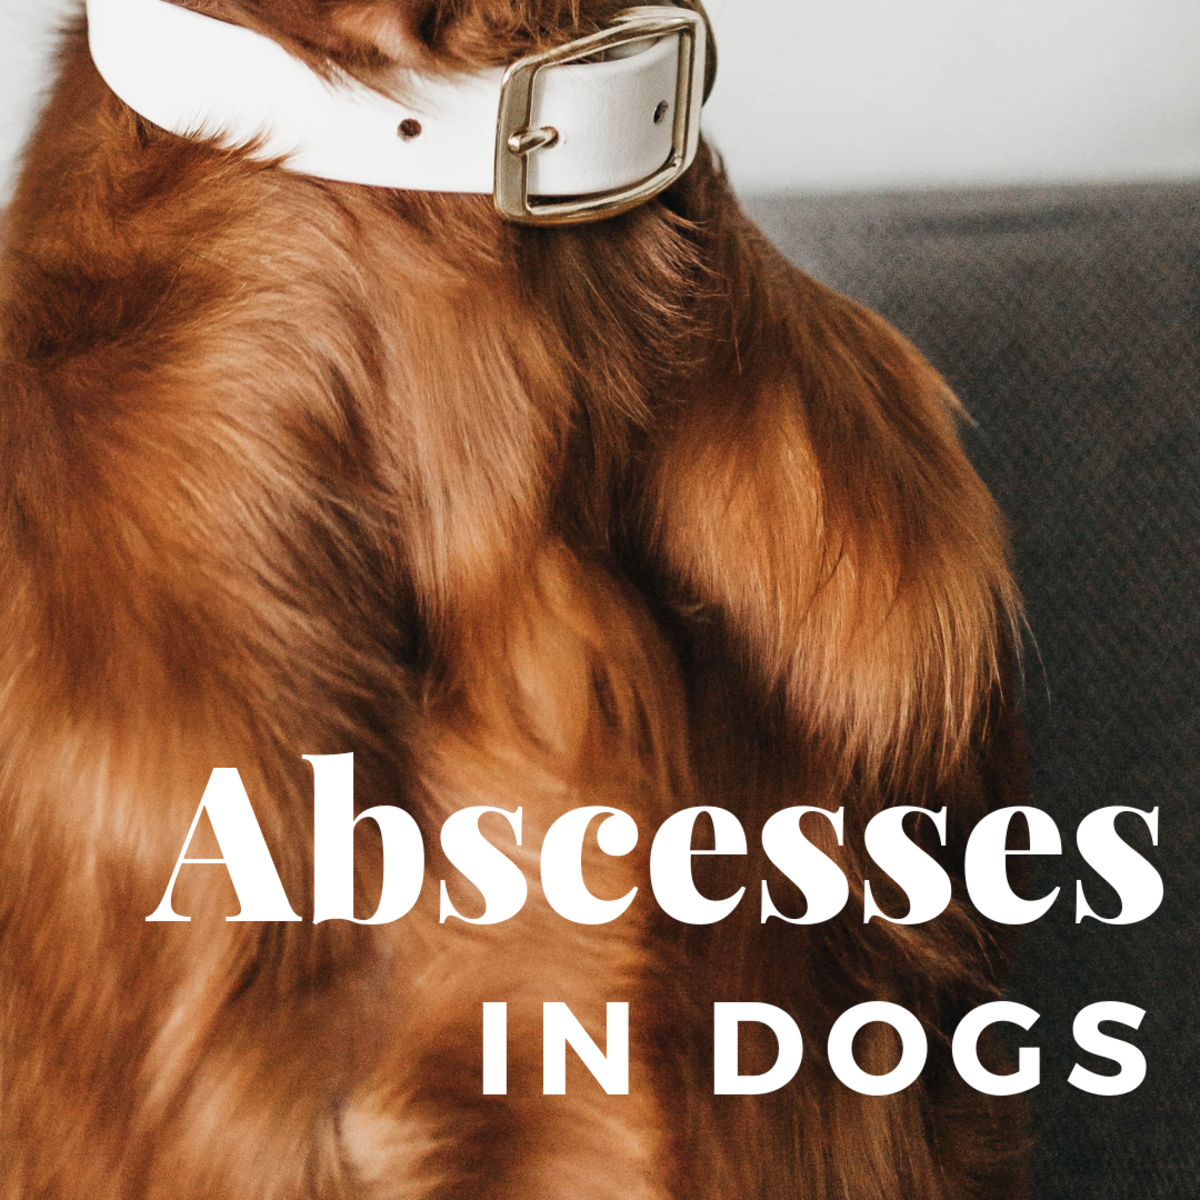 How to Manage Abscesses in Dogs